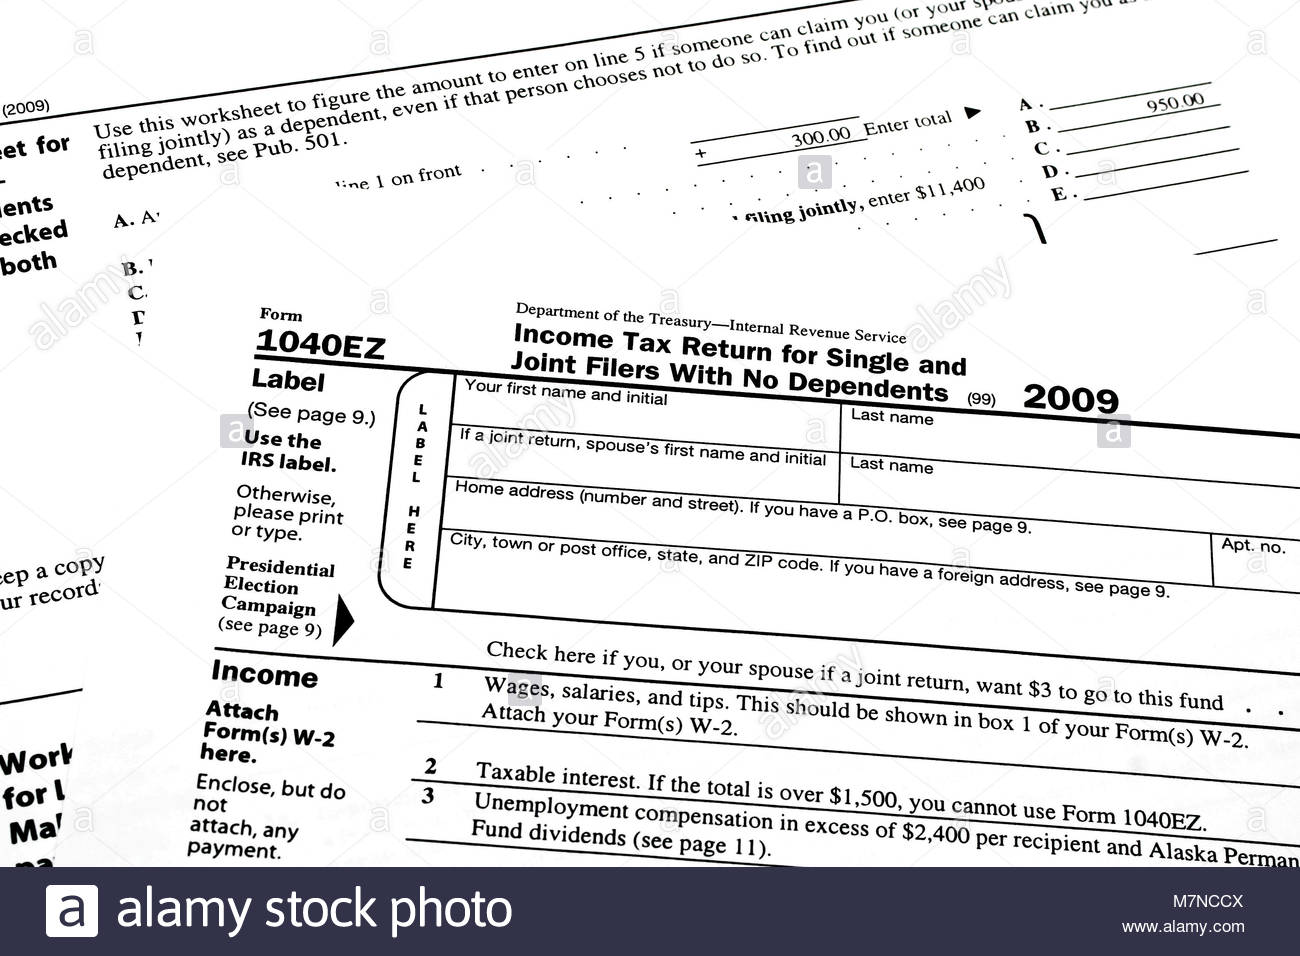 Where Can I Find A 1040ez Tax Form